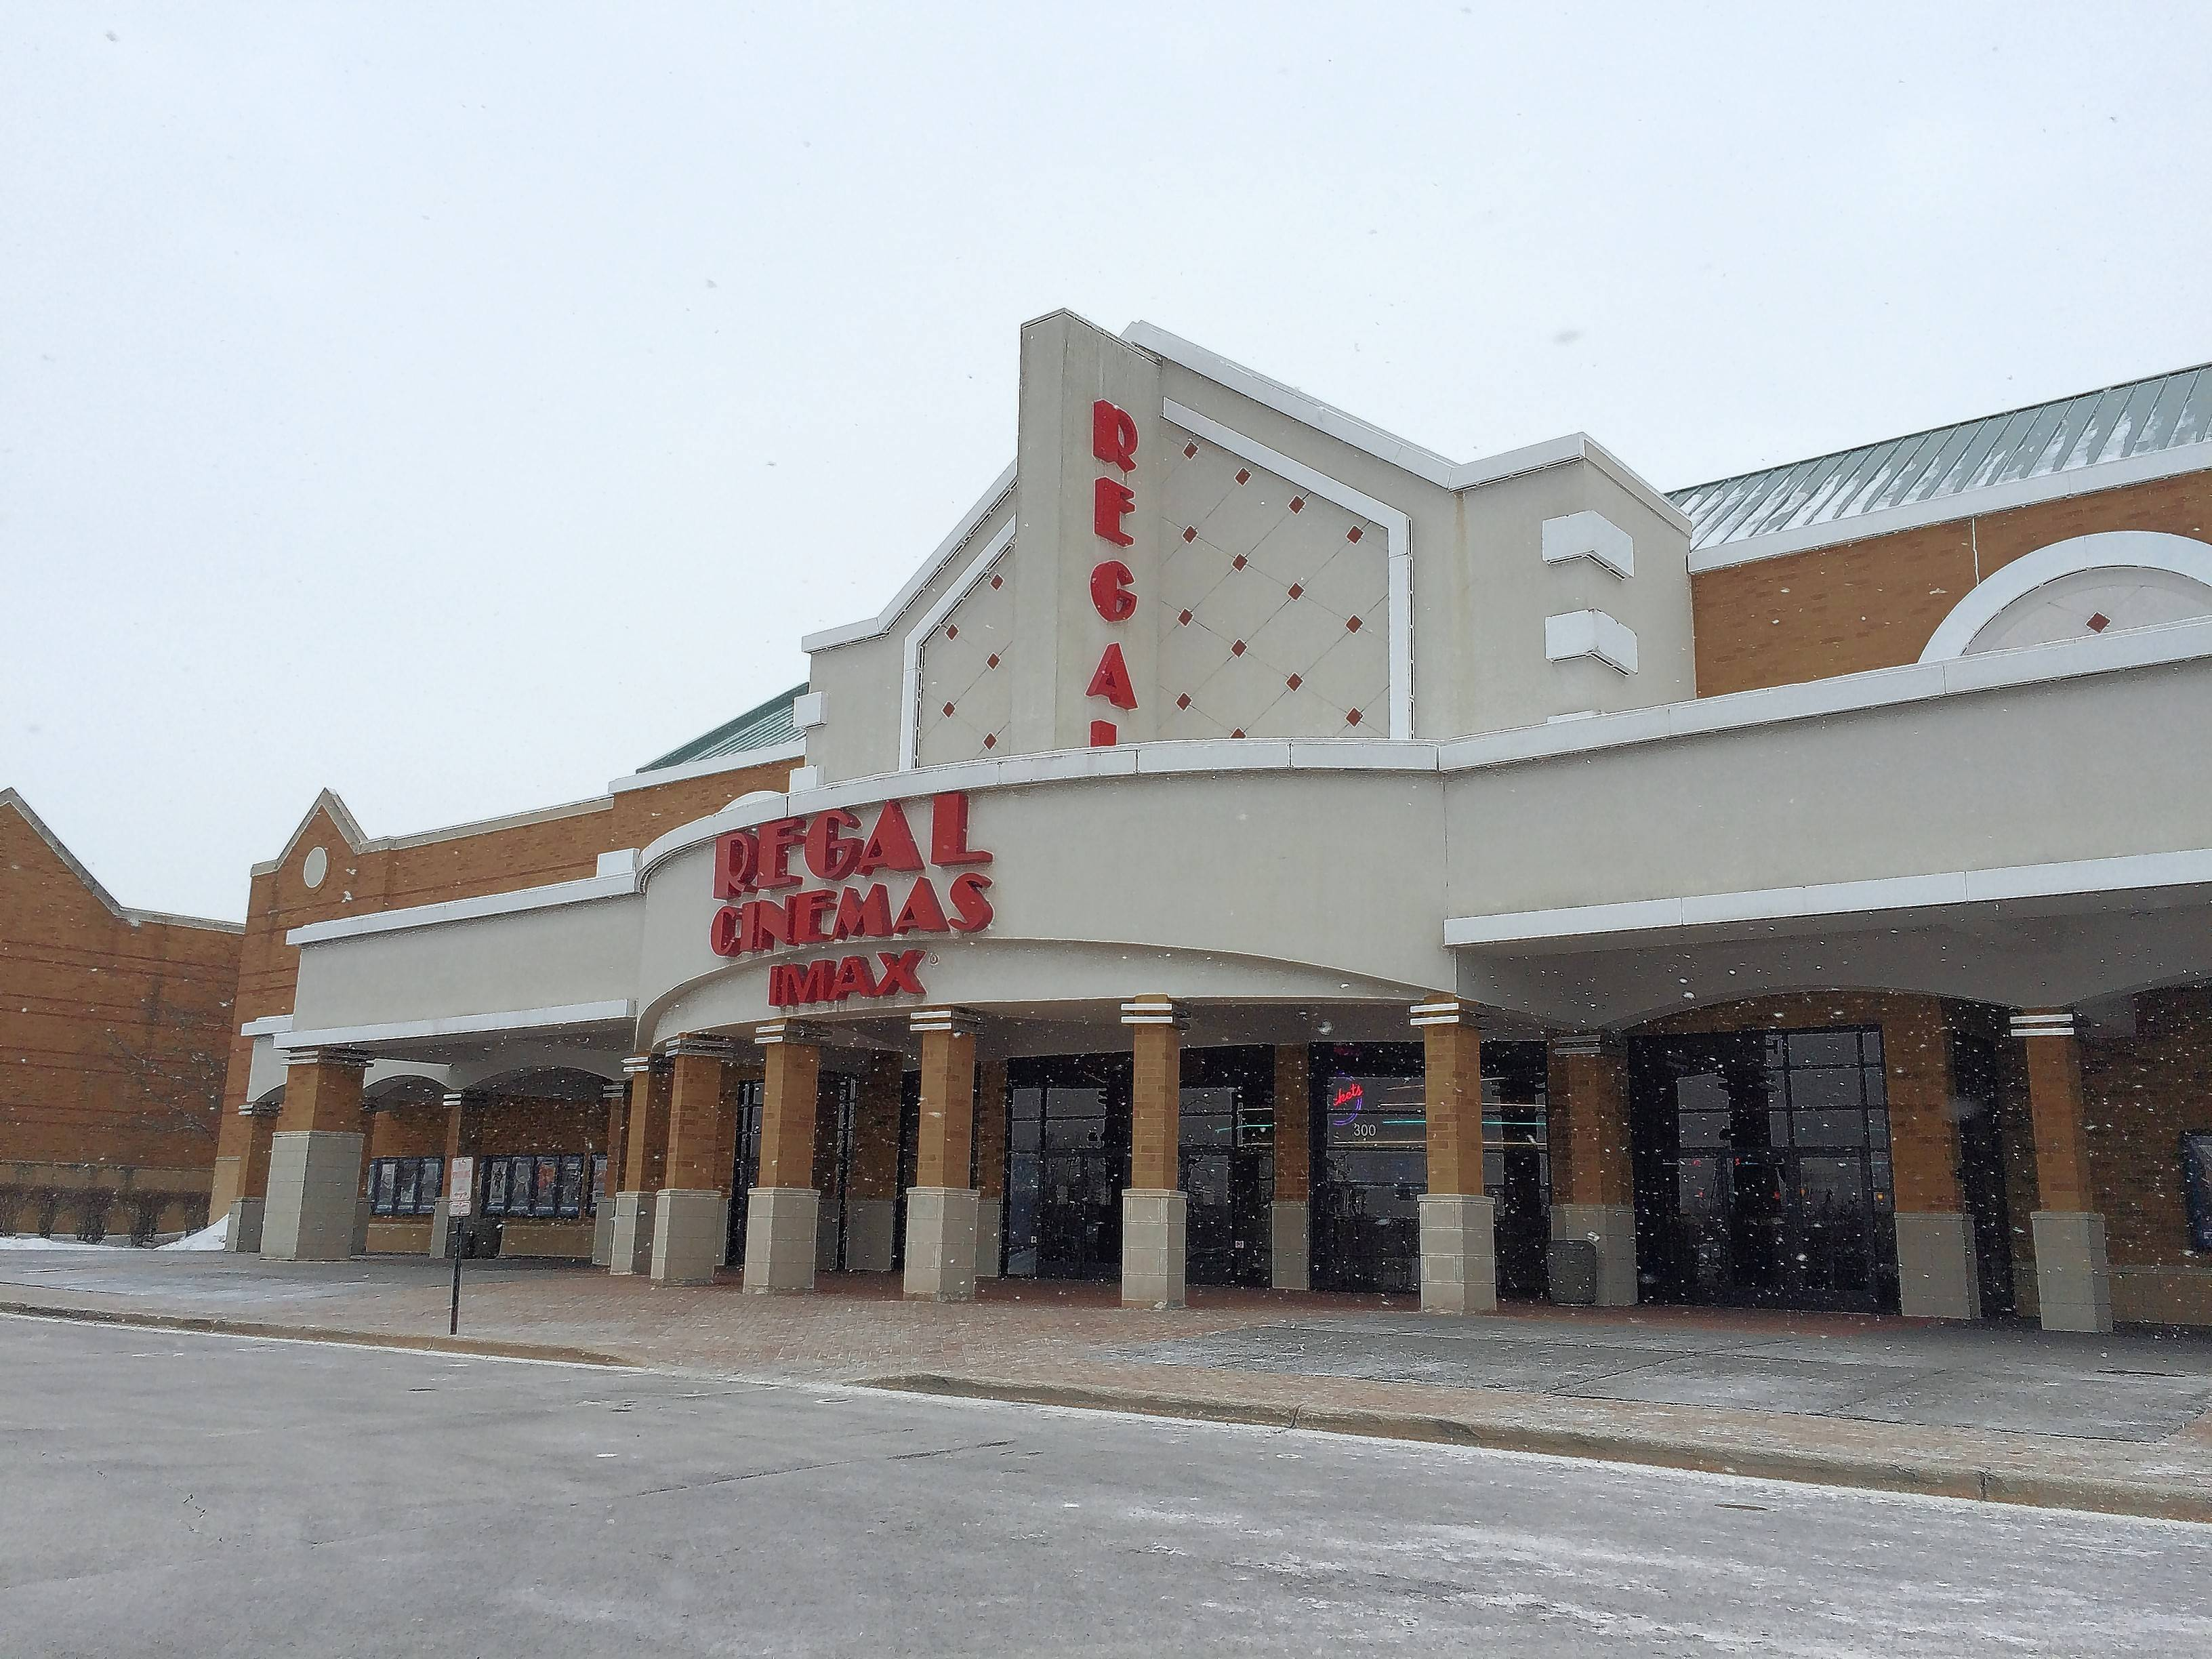 A developer wants to tear down half the Regal Cinemas in Lincolnshire and build an apartment complex. Lincolnshire's village board has sent the proposal to the village's architectural review board.